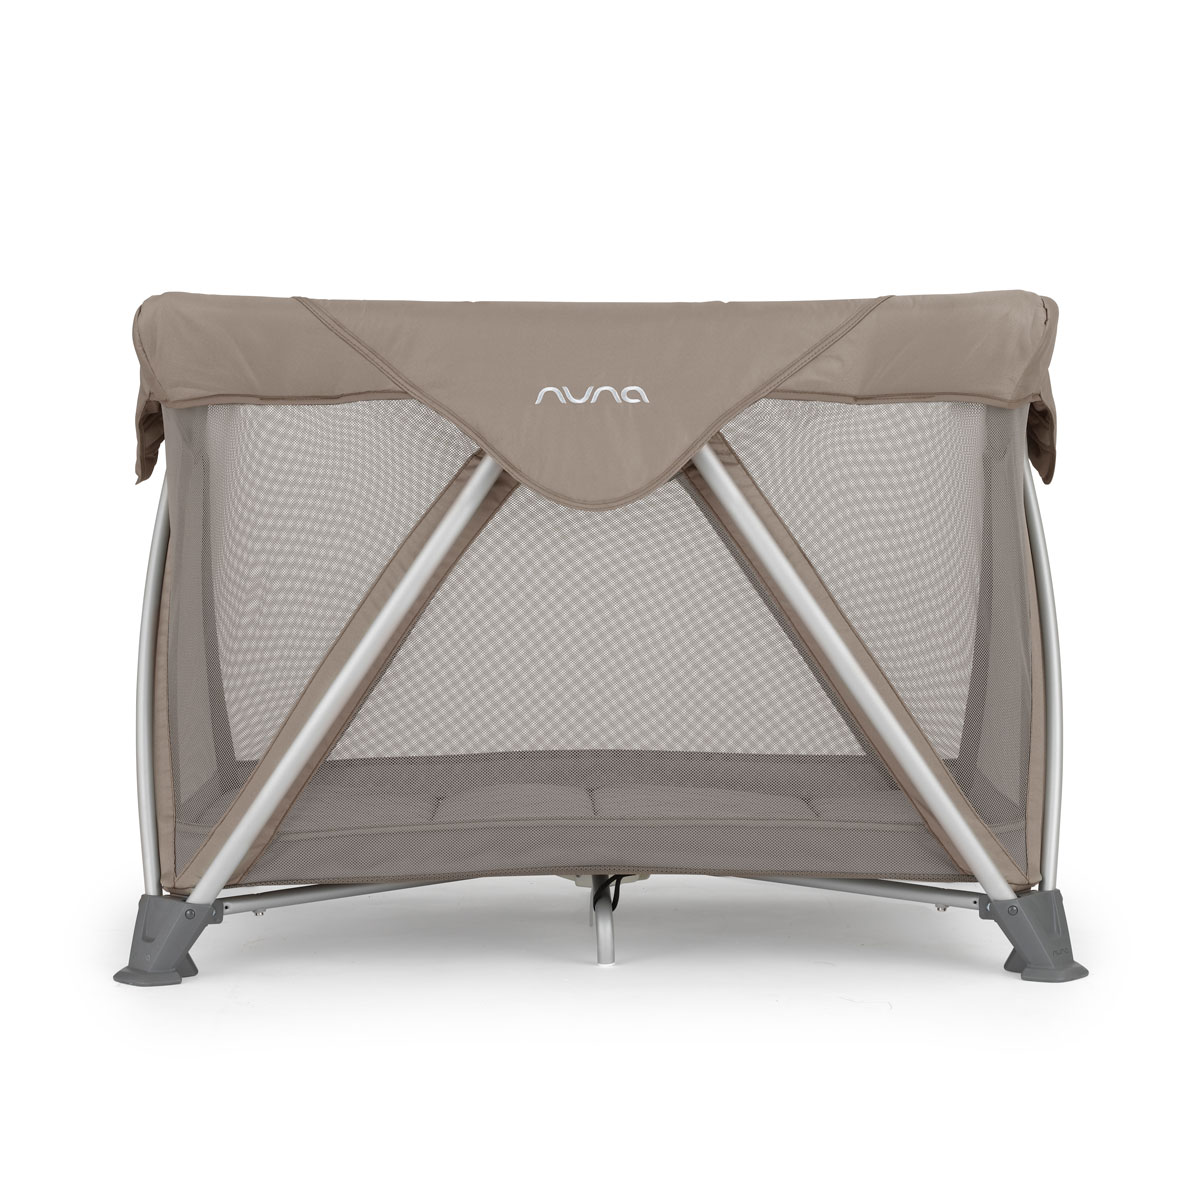 Nuna Sena Aire Travel Crib Thetot